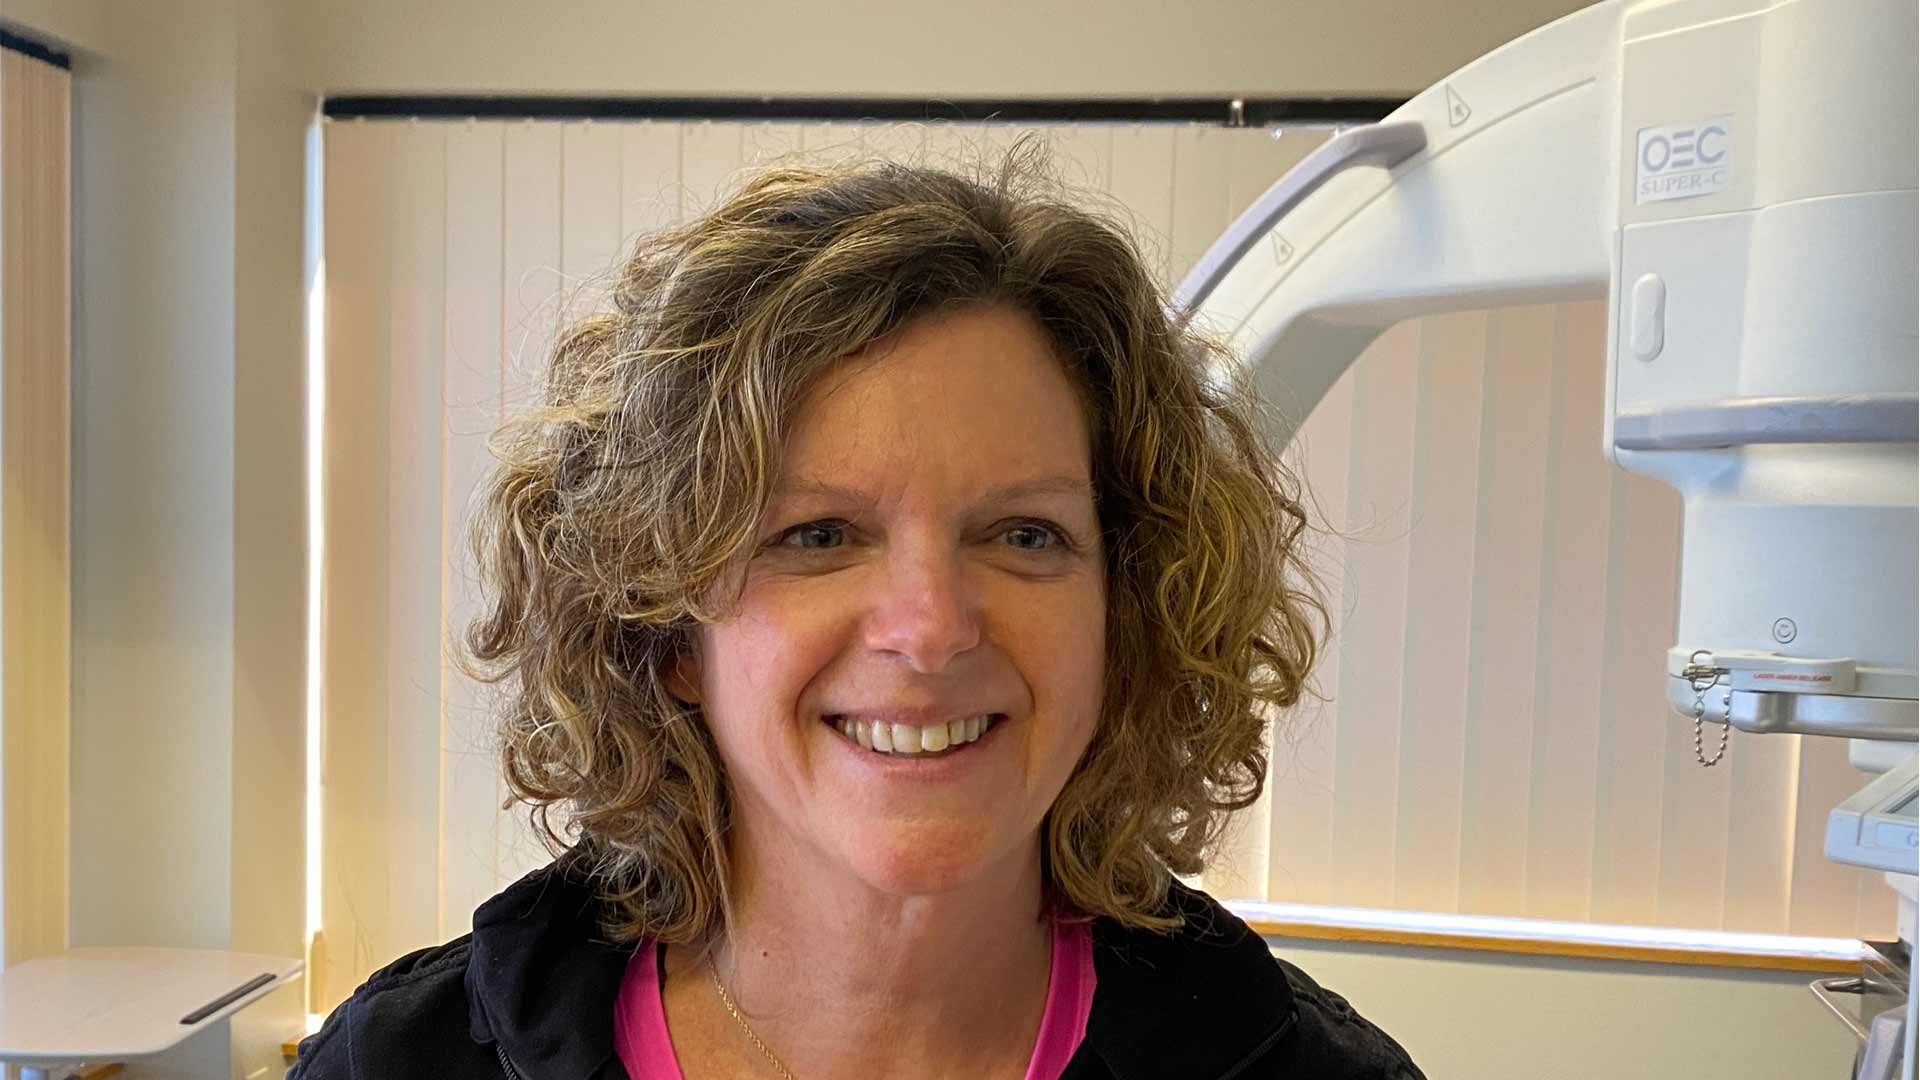 Susan anke and knee stem cell treatment